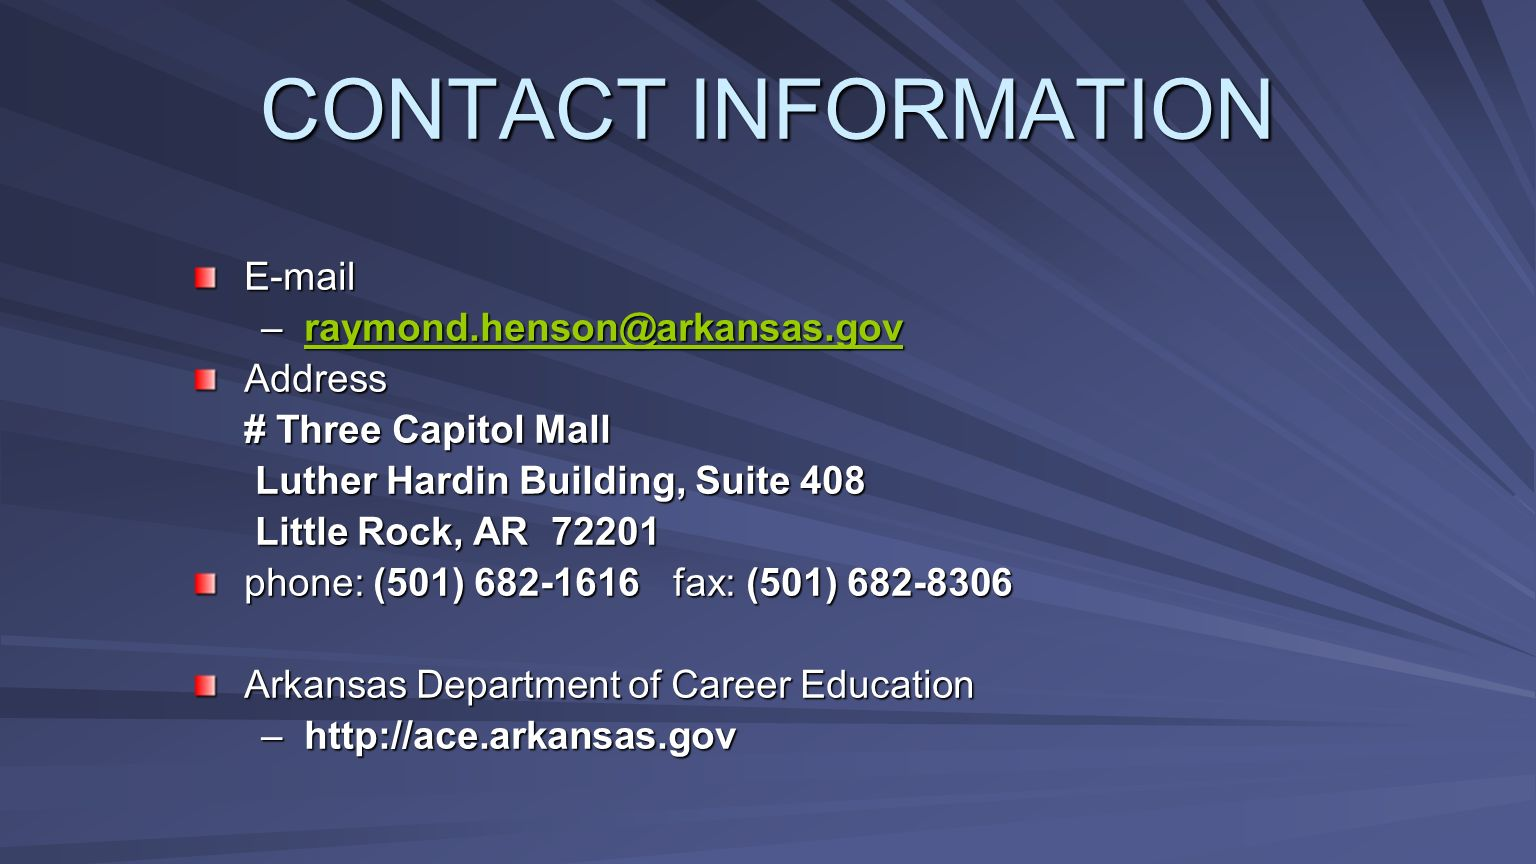 CONTACT INFORMATION E-mail –raymond.henson@arkansas.gov raymond.henson@arkansas.gov Address # Three Capitol Mall Luther Hardin Building, Suite 408 Lut